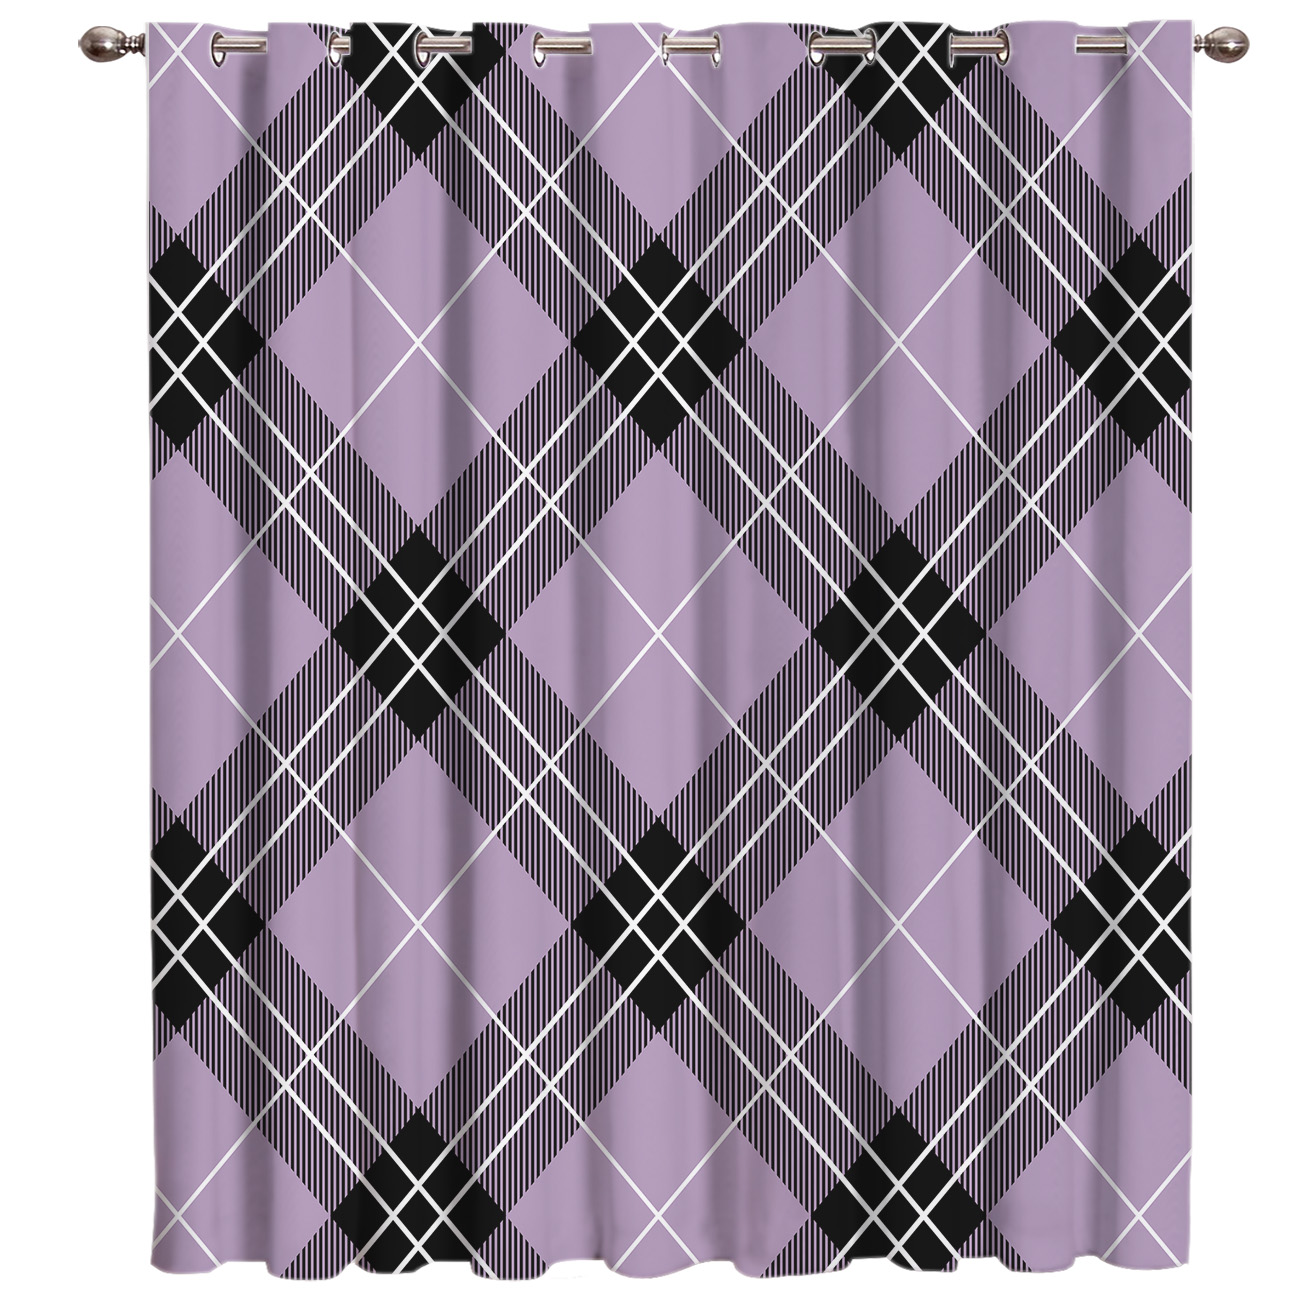 Traditional English Tartan Window Treatments Curtains Valance Living Room Kitchen Fabric Kids Curtain Panels With Grommets